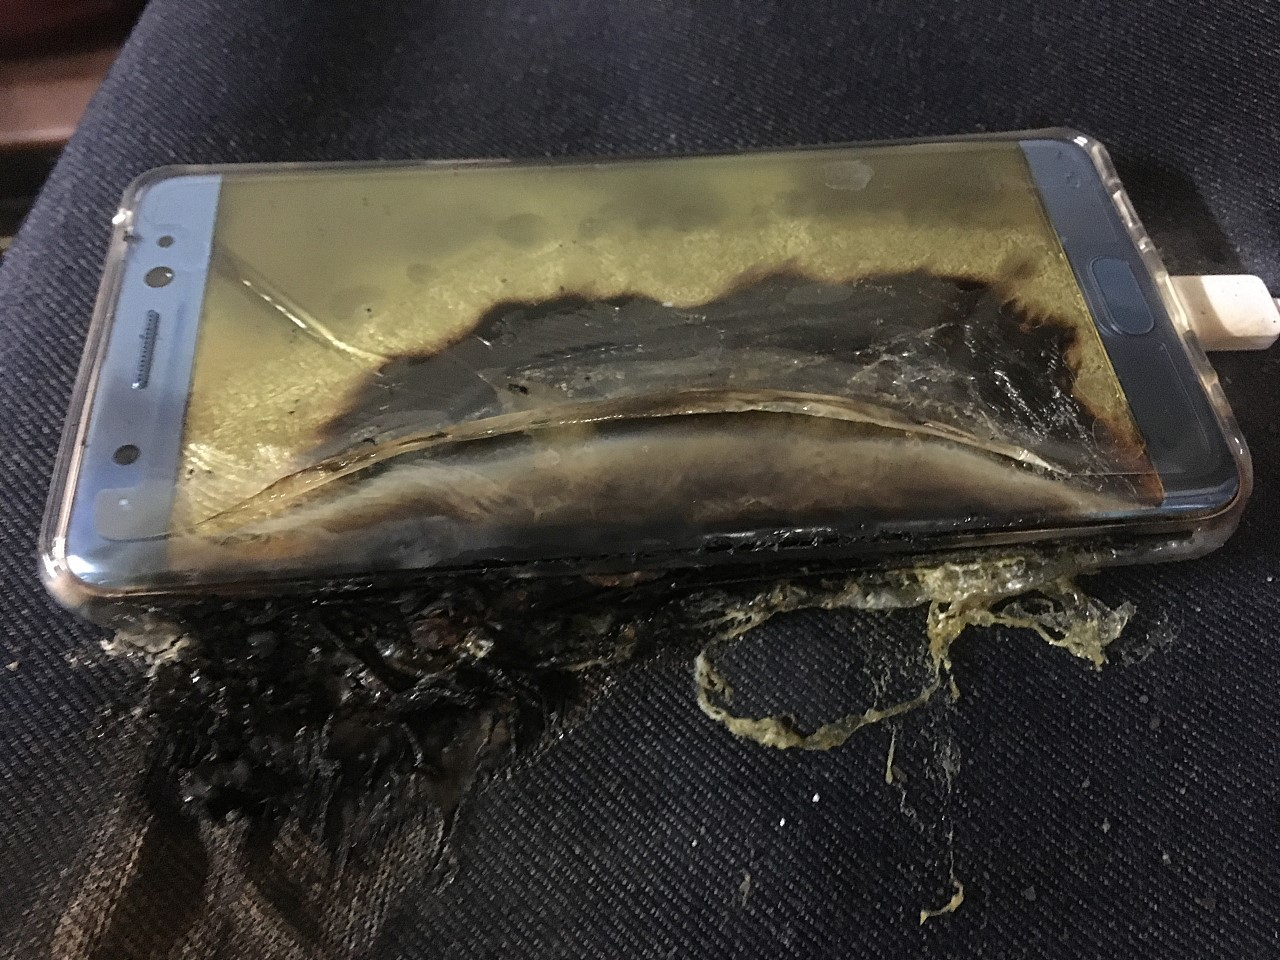 samsung-galaxy-note-7-on-fire-image-001